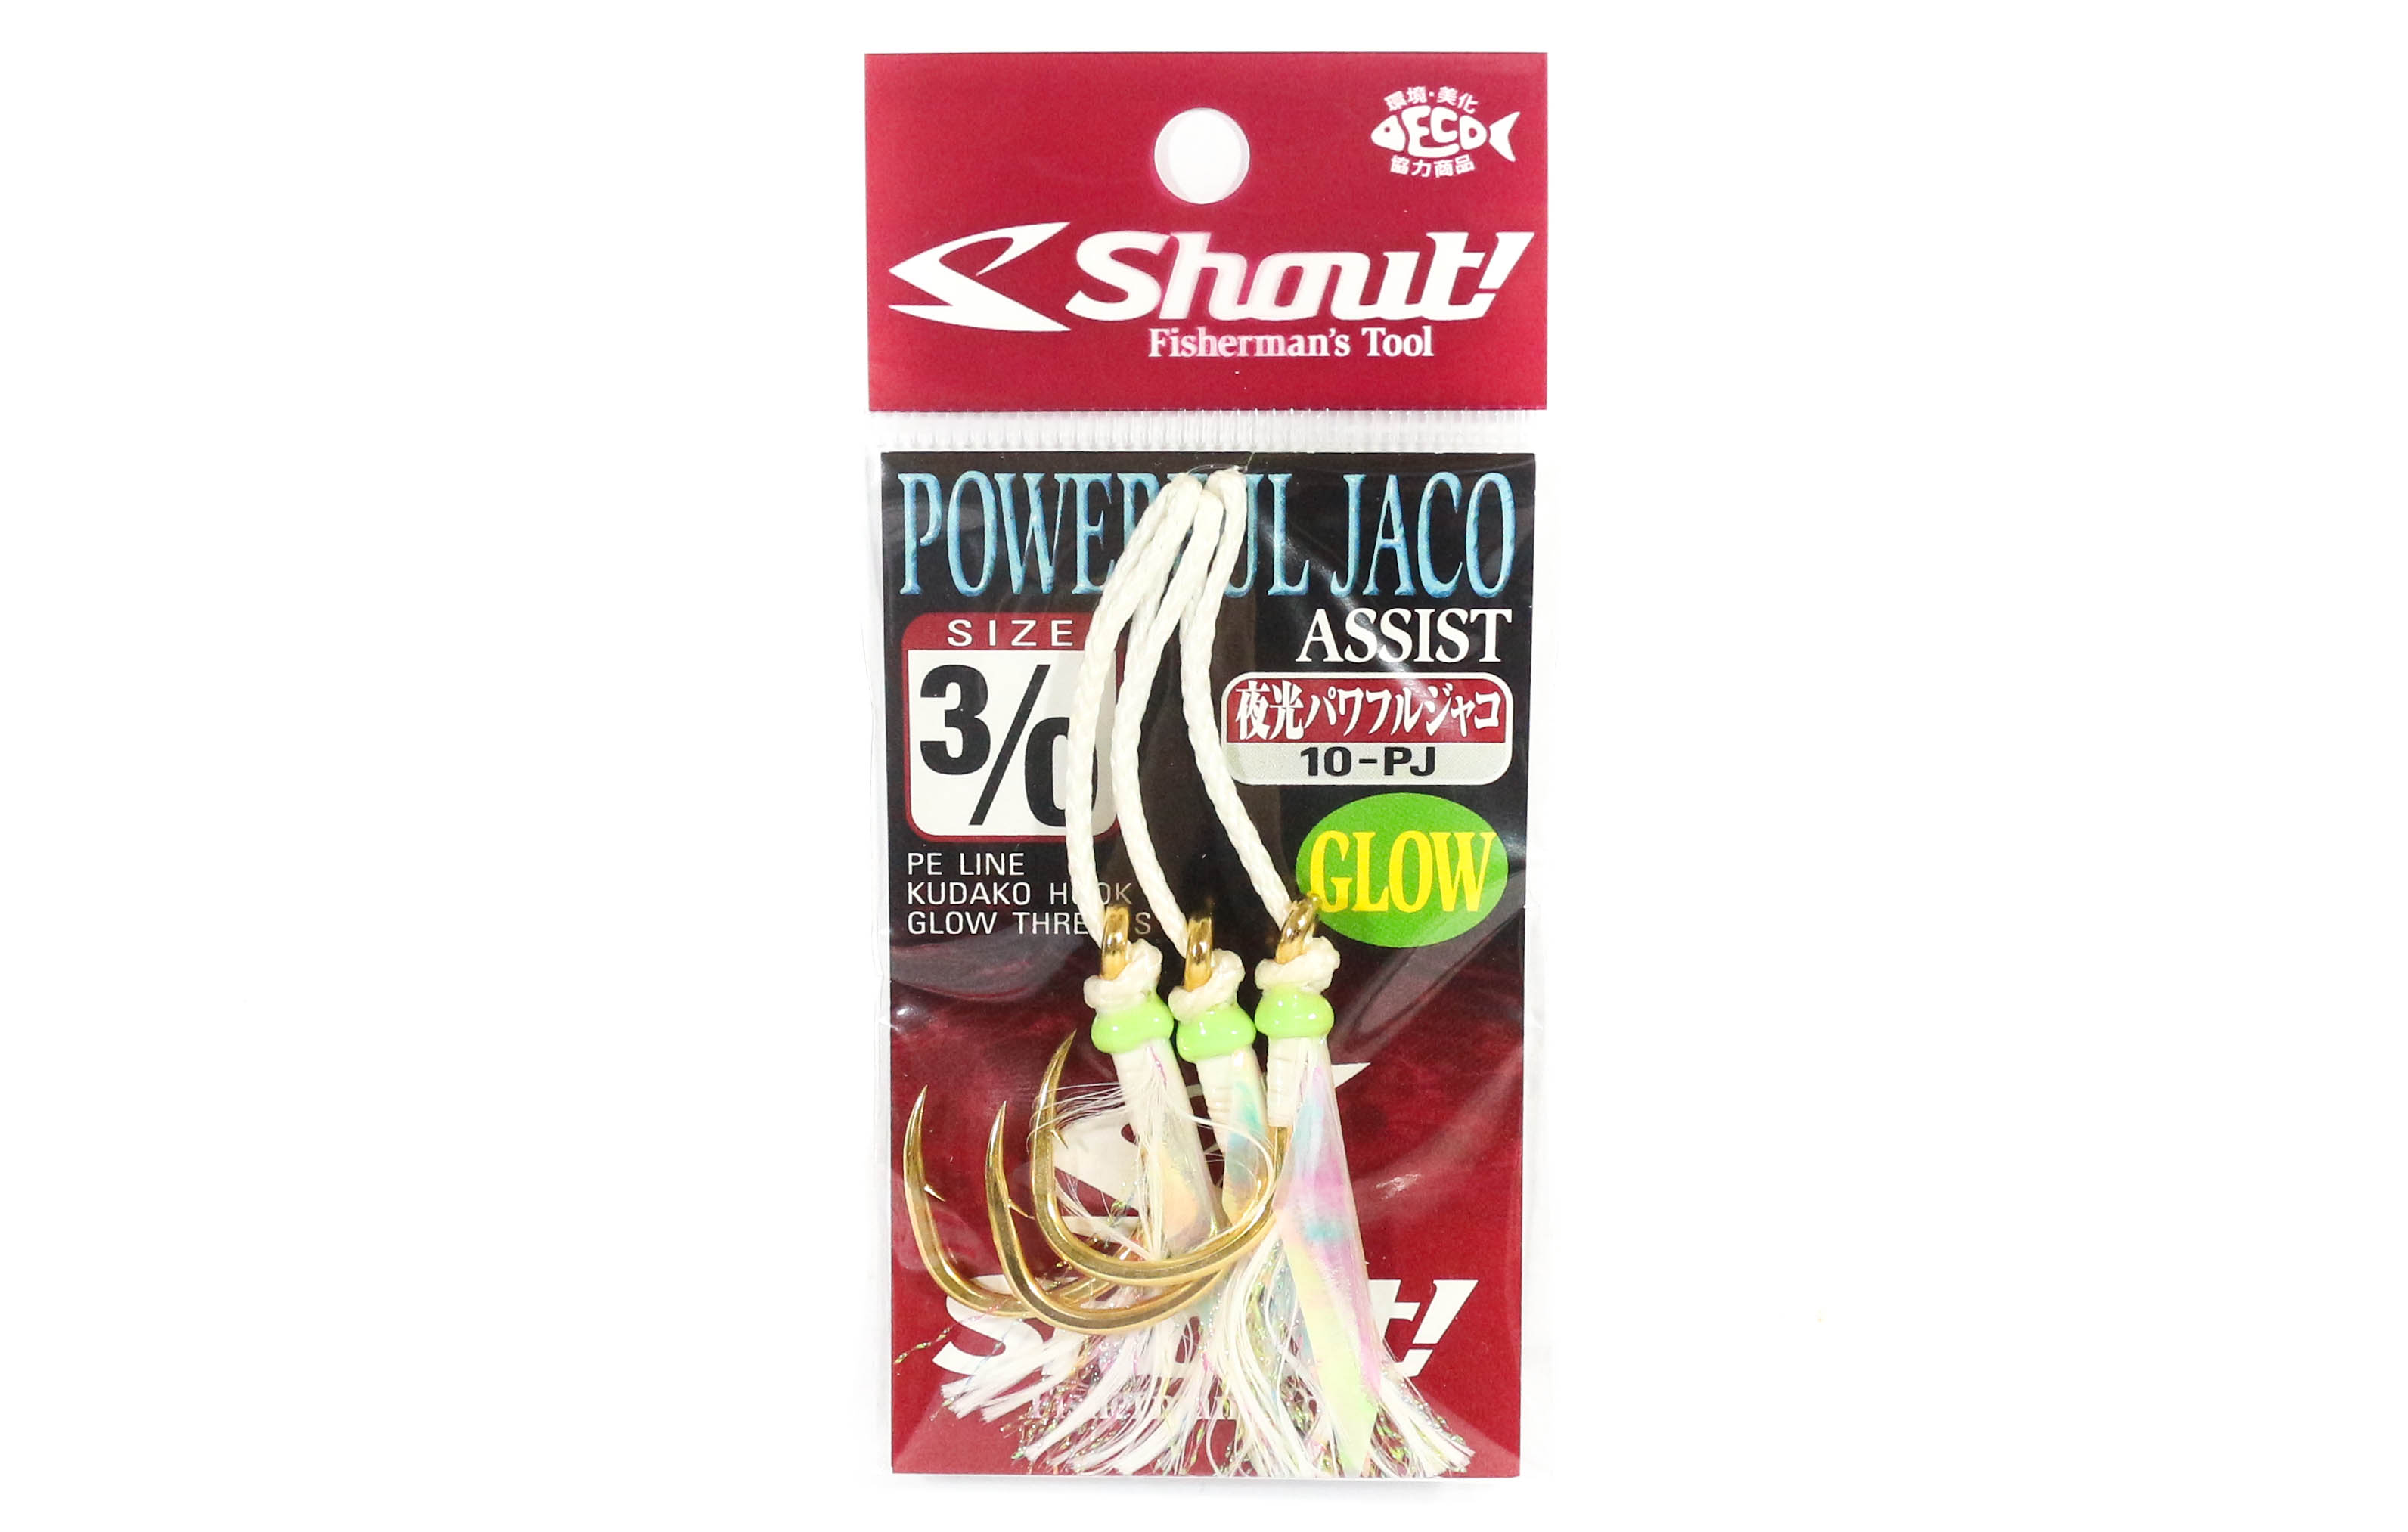 Shout 10-PJ Powerful Jaco Hook Rigged Assist Glow Size 3/0 (8308)